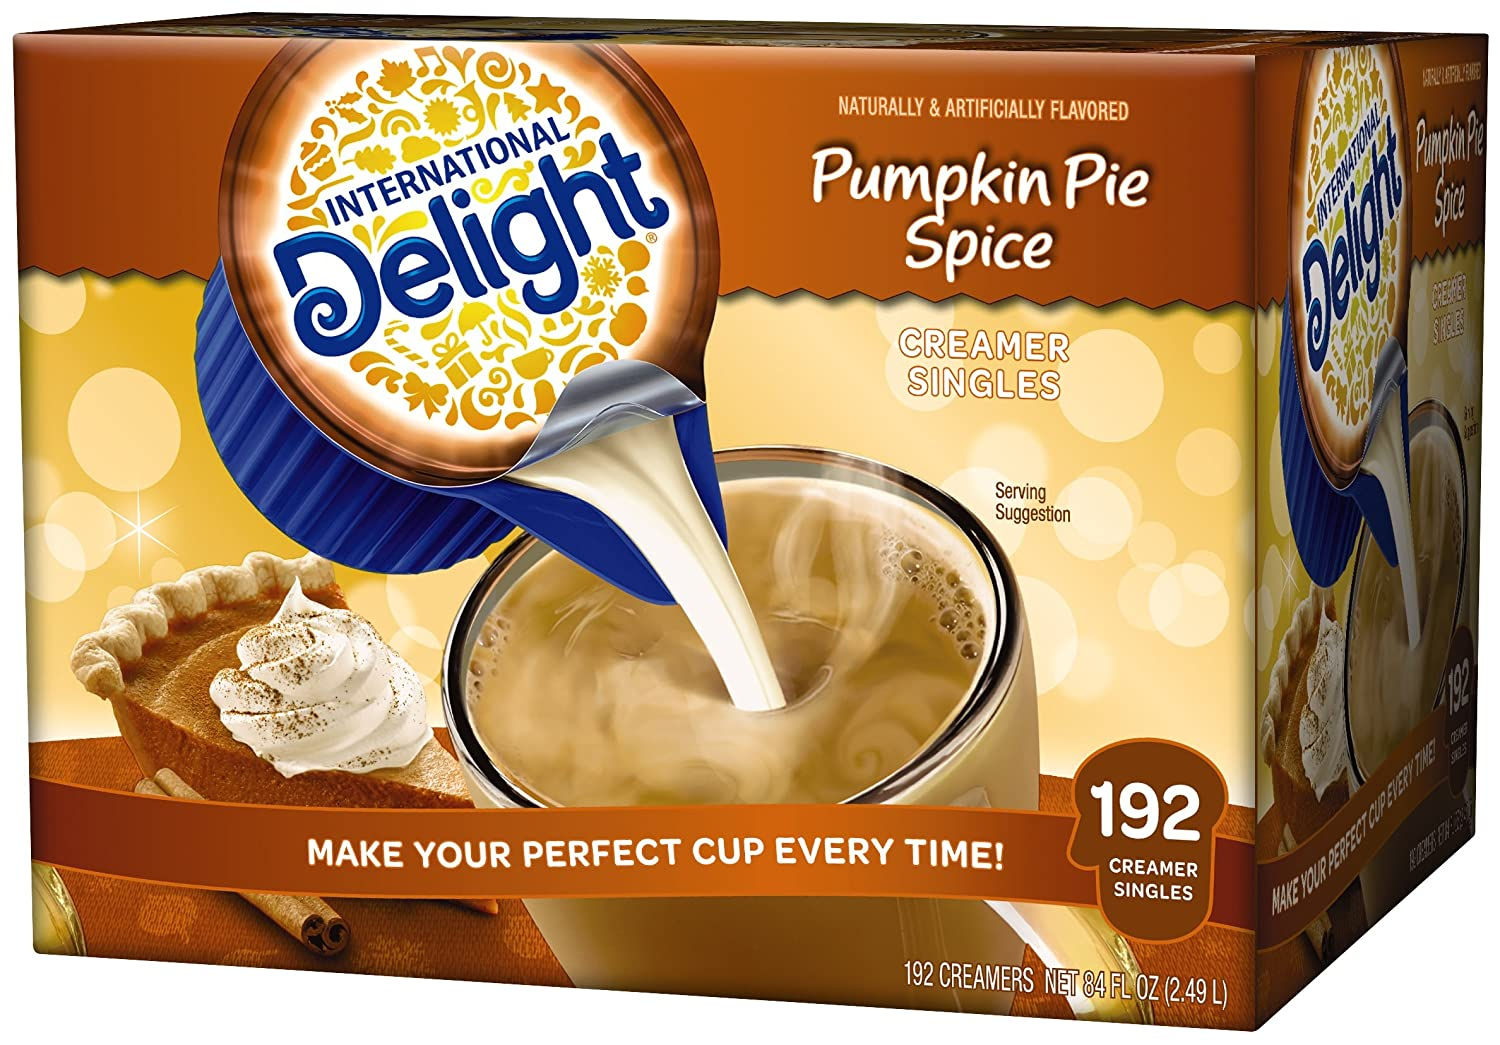 International Delight Pumpkin Pie Spice Coffee Creamer Pack of 192 Single Serve Cups 402521-002